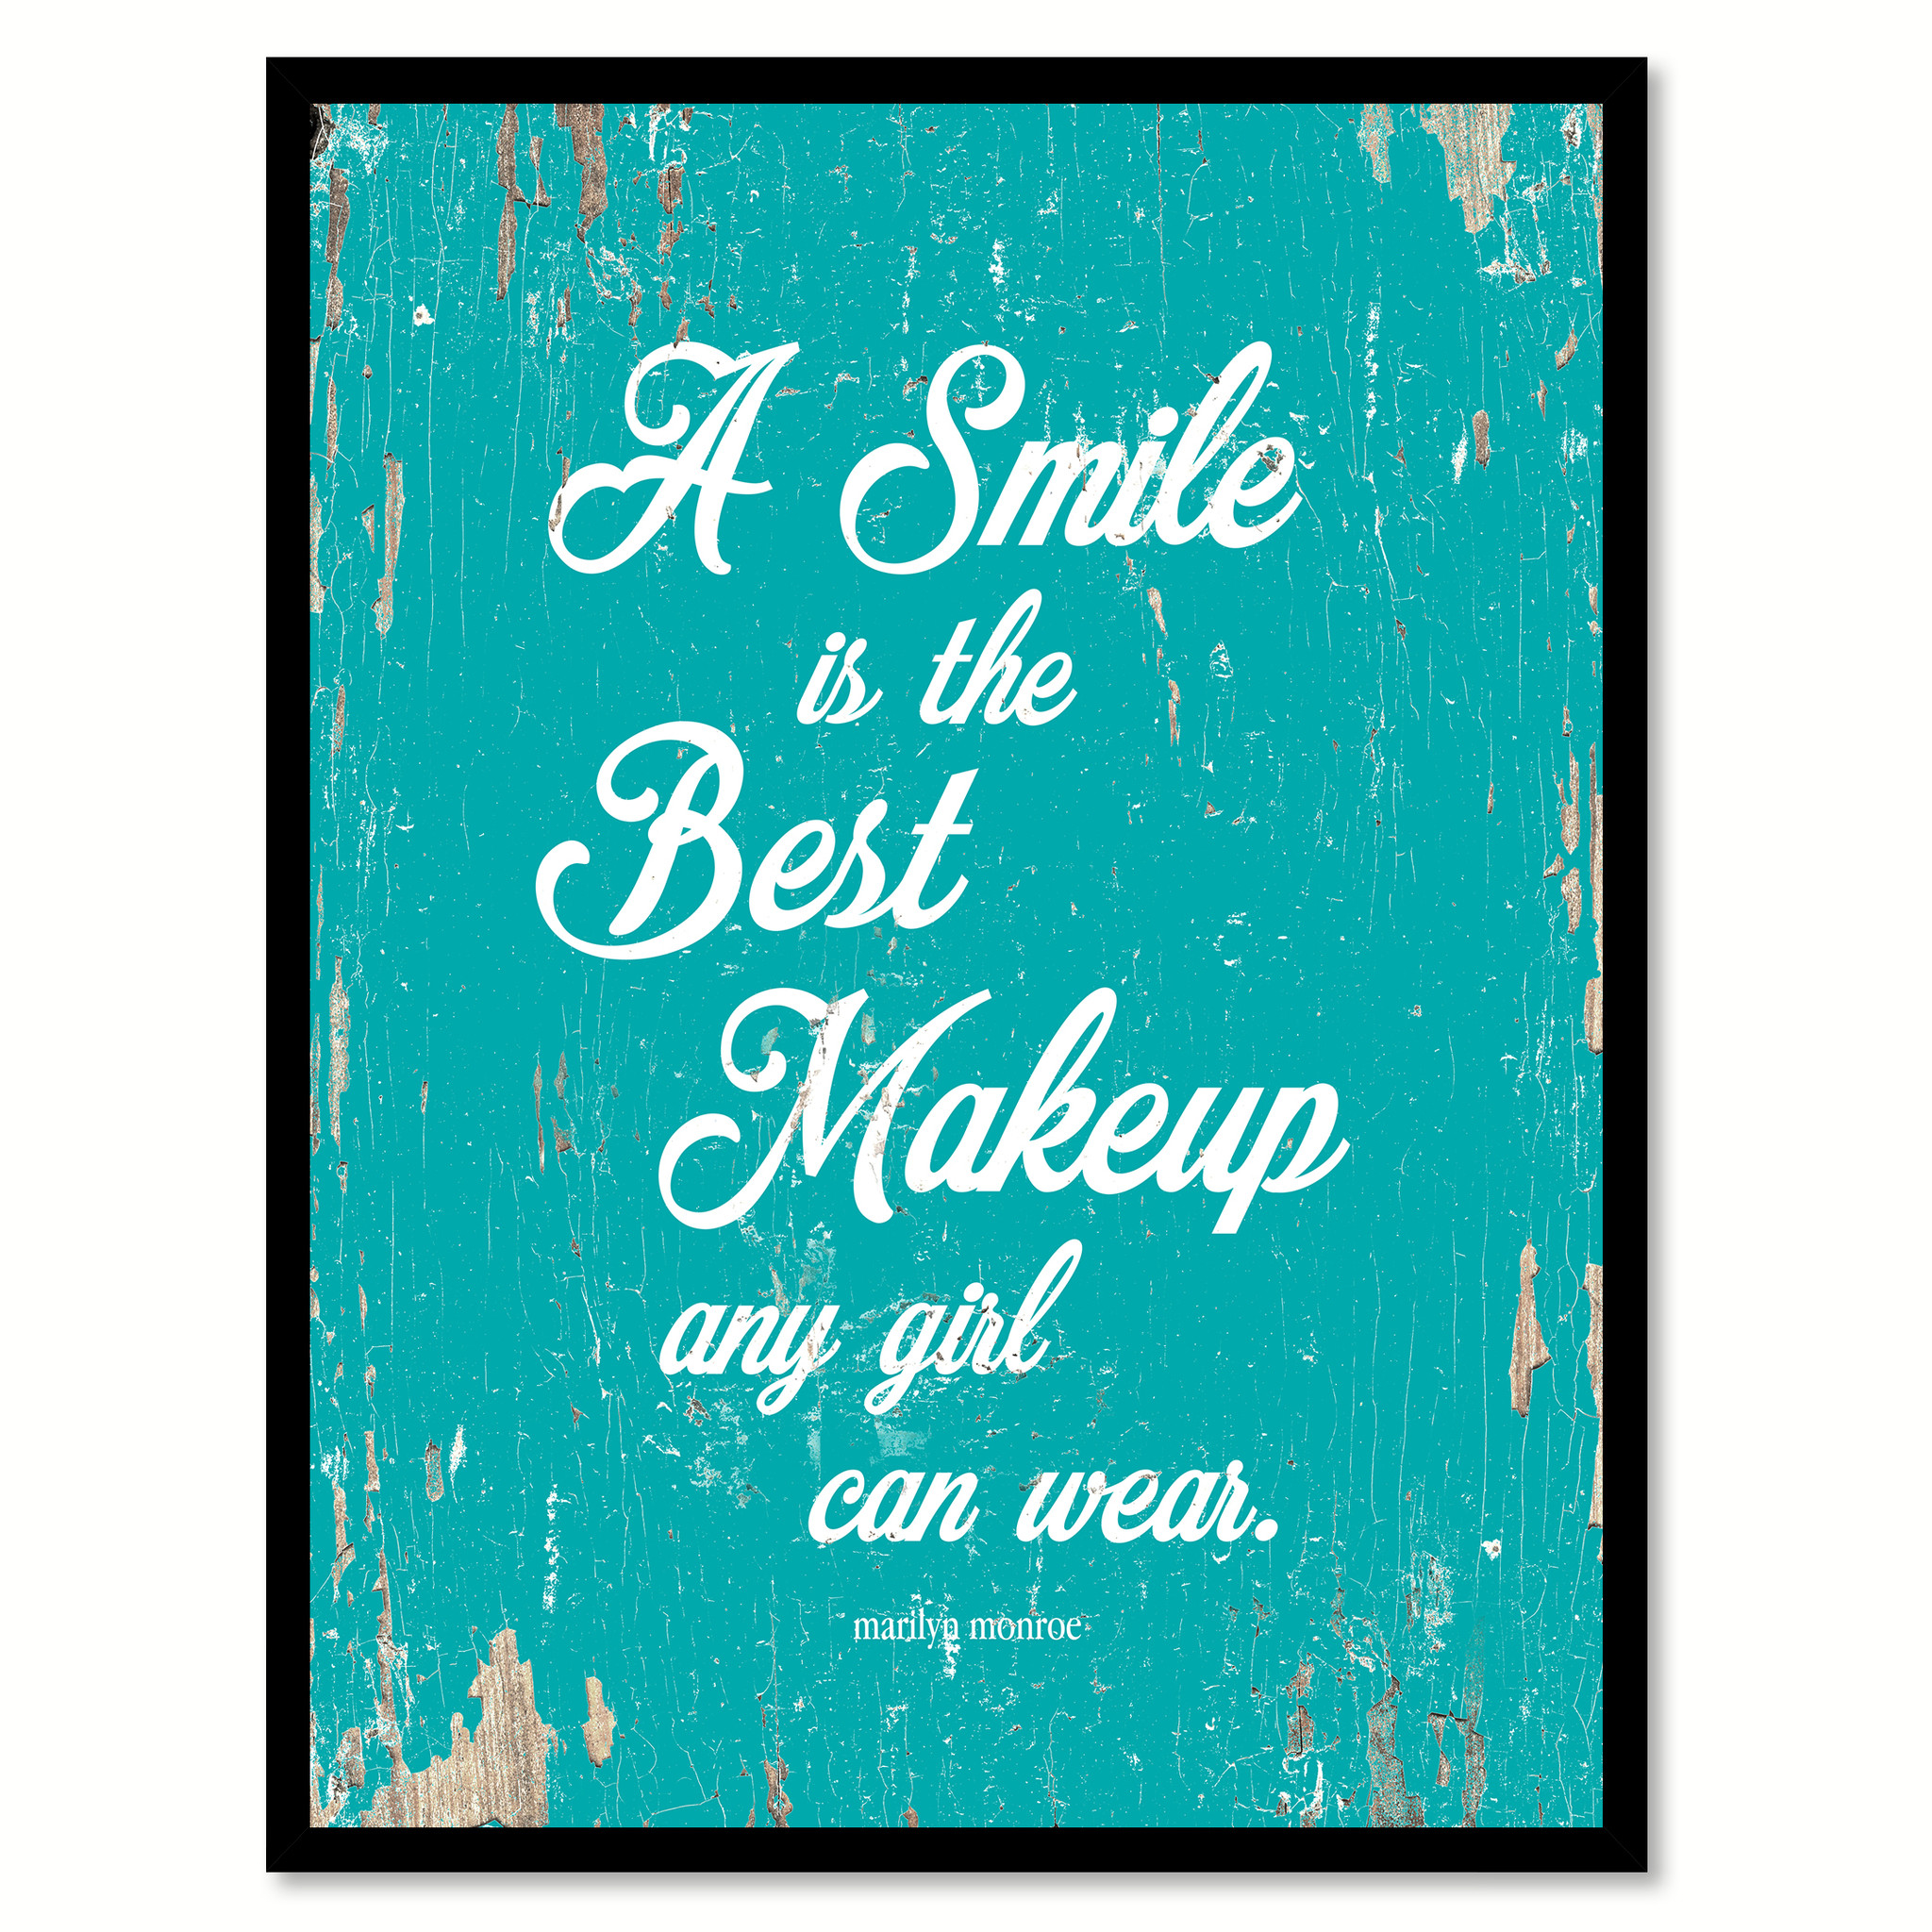 "A Smile Is The Best Makeup Any Girl Can Wear - Marilyn Monroe Saying Canvas Print with Picture Frame Home Decor Wall Art Gifts - 7""x9\"""